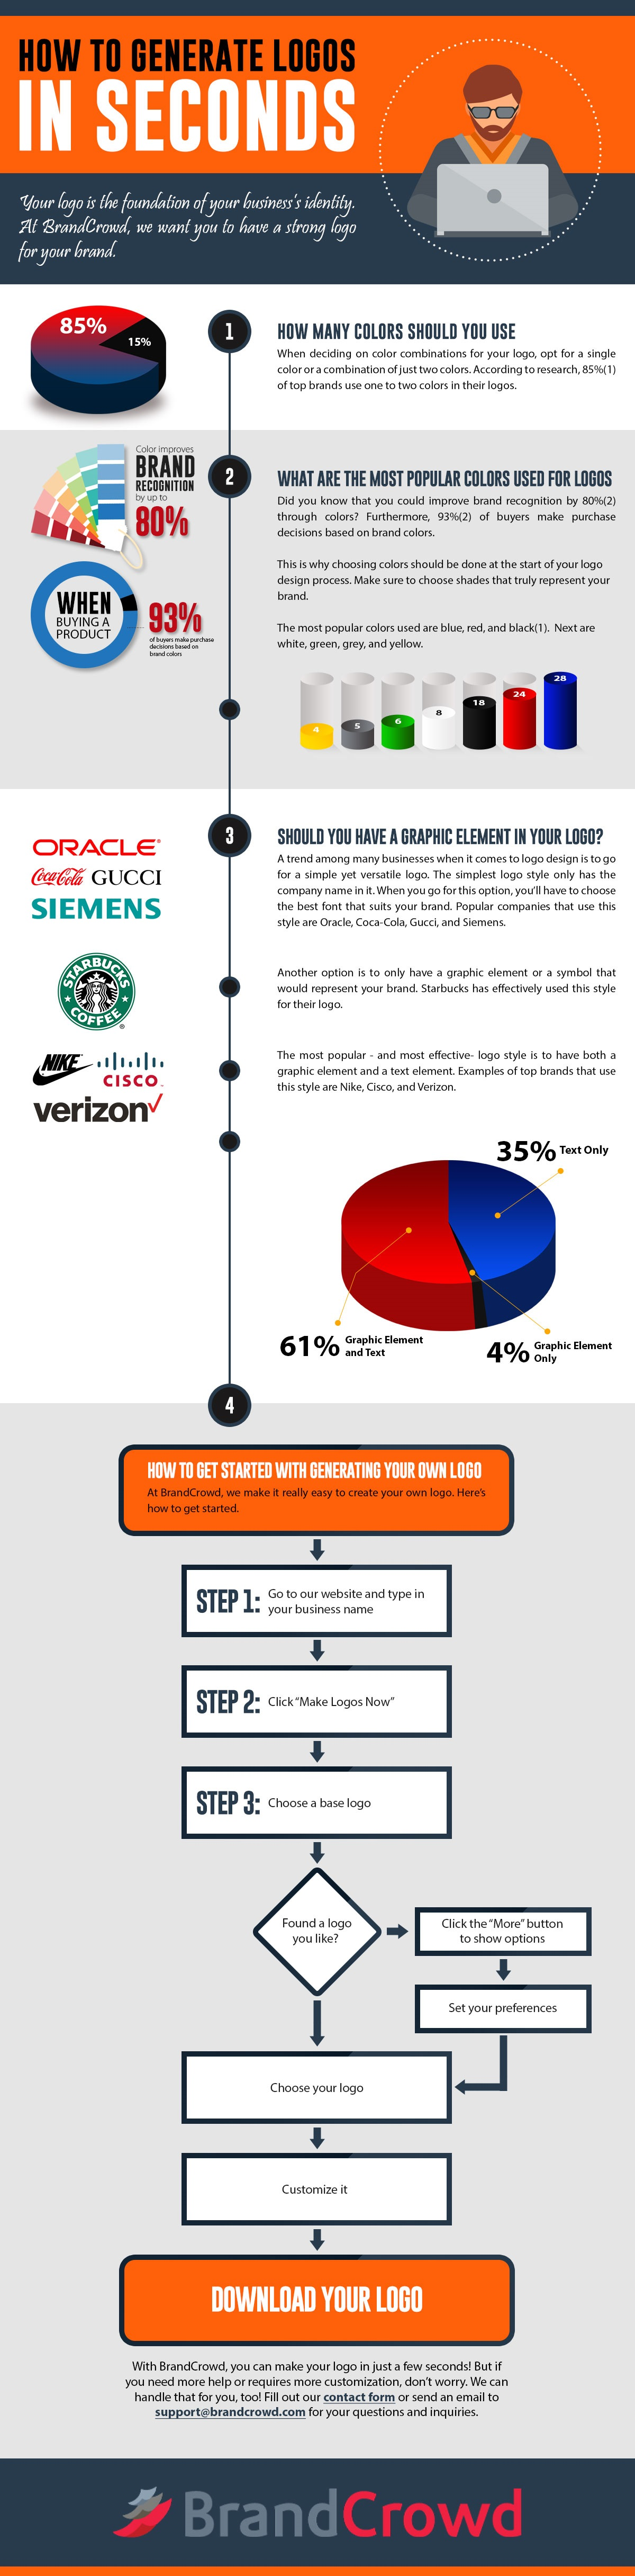 Infographic - How to Generate Logos in Seconds